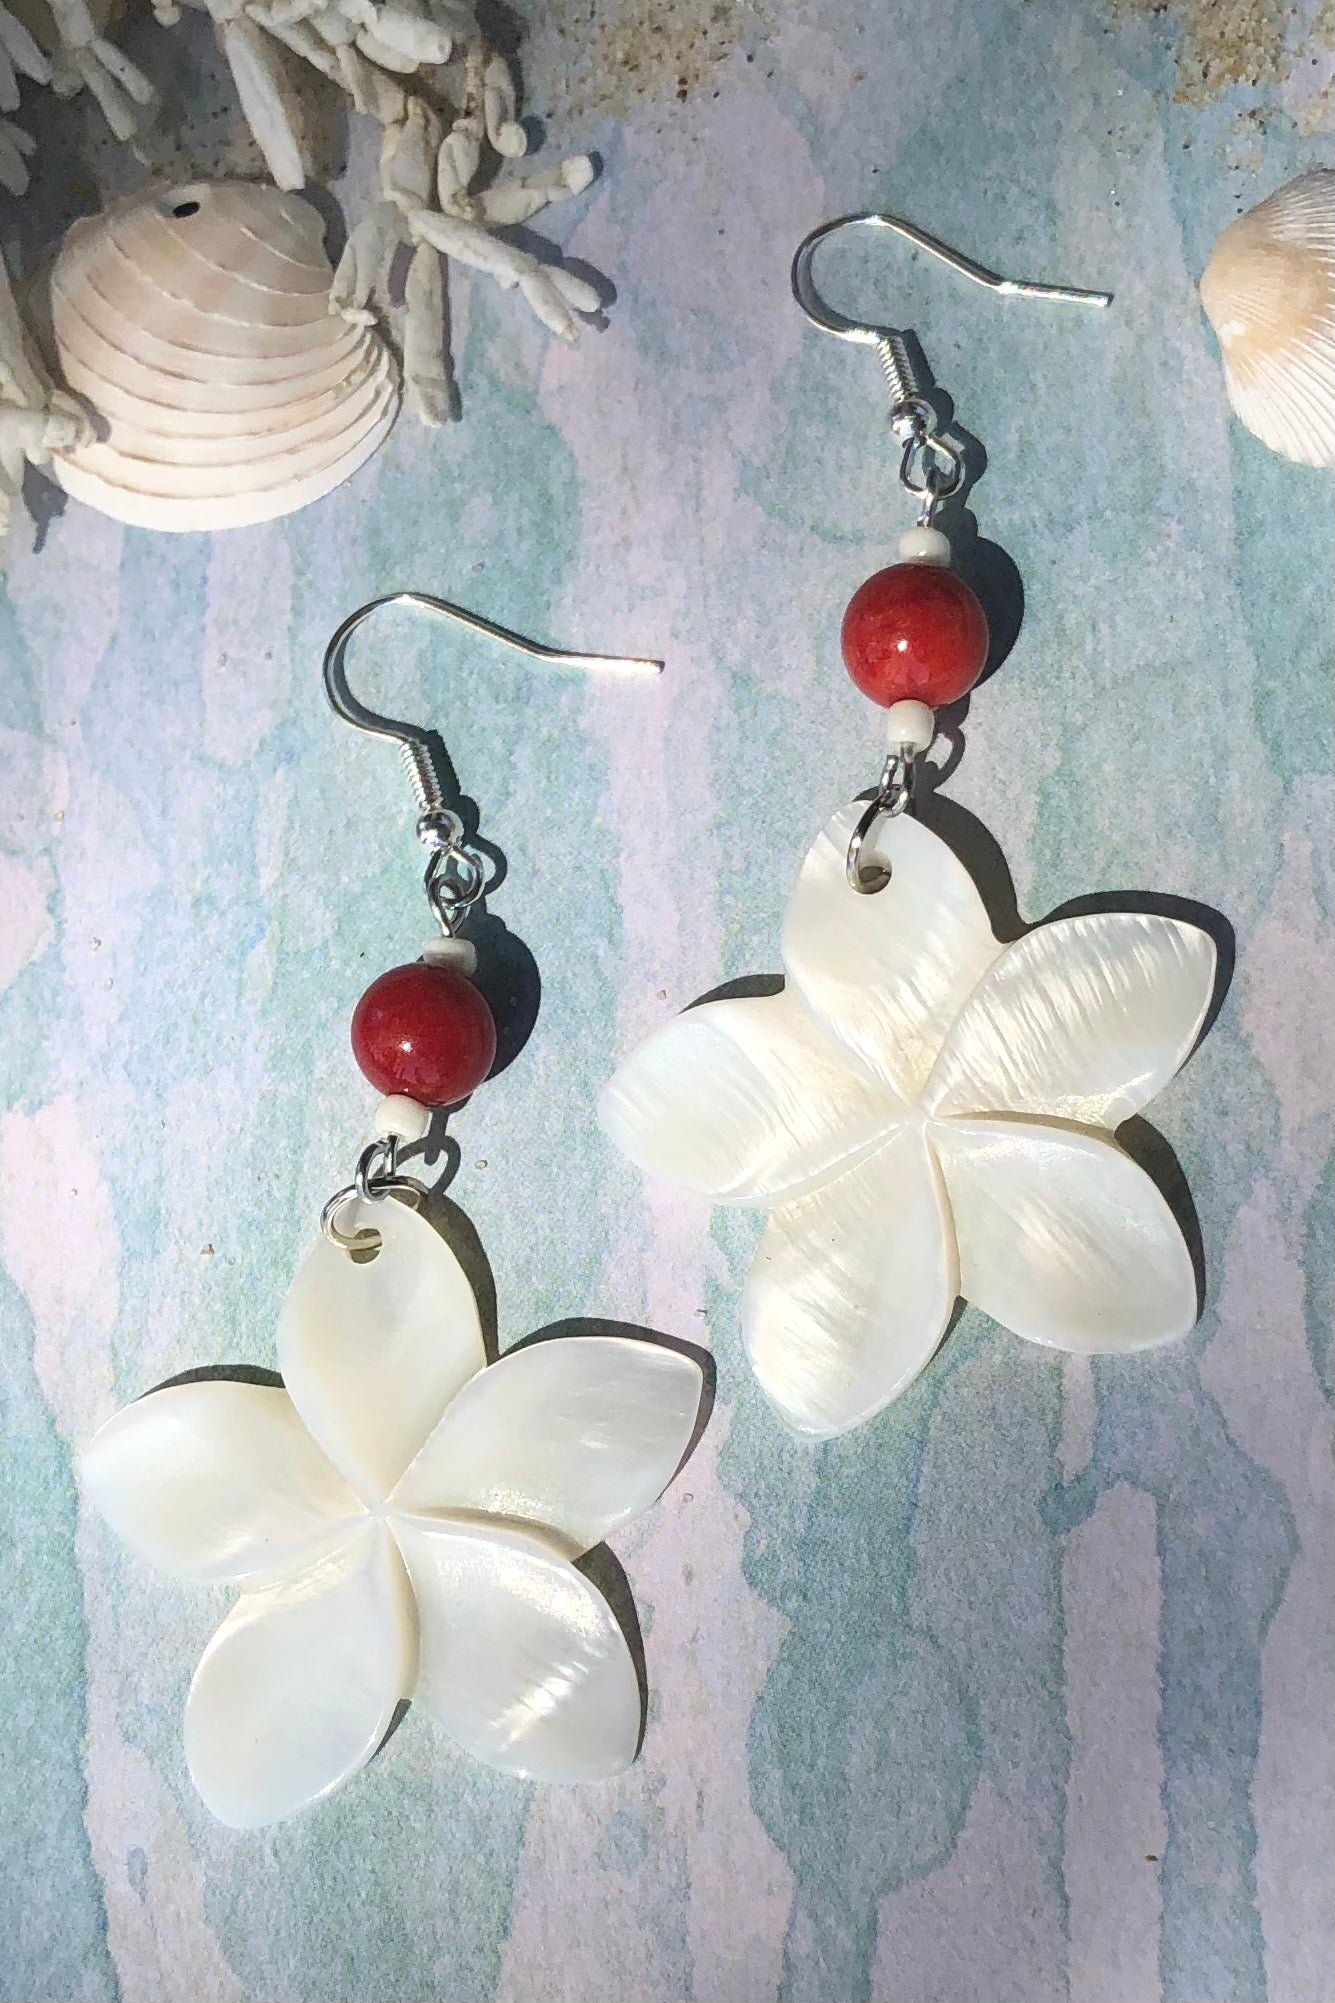 hese earrings with frangipani flowers hand carved from Mother of Pearl shell all carry the distinctive marks of the artist who created them